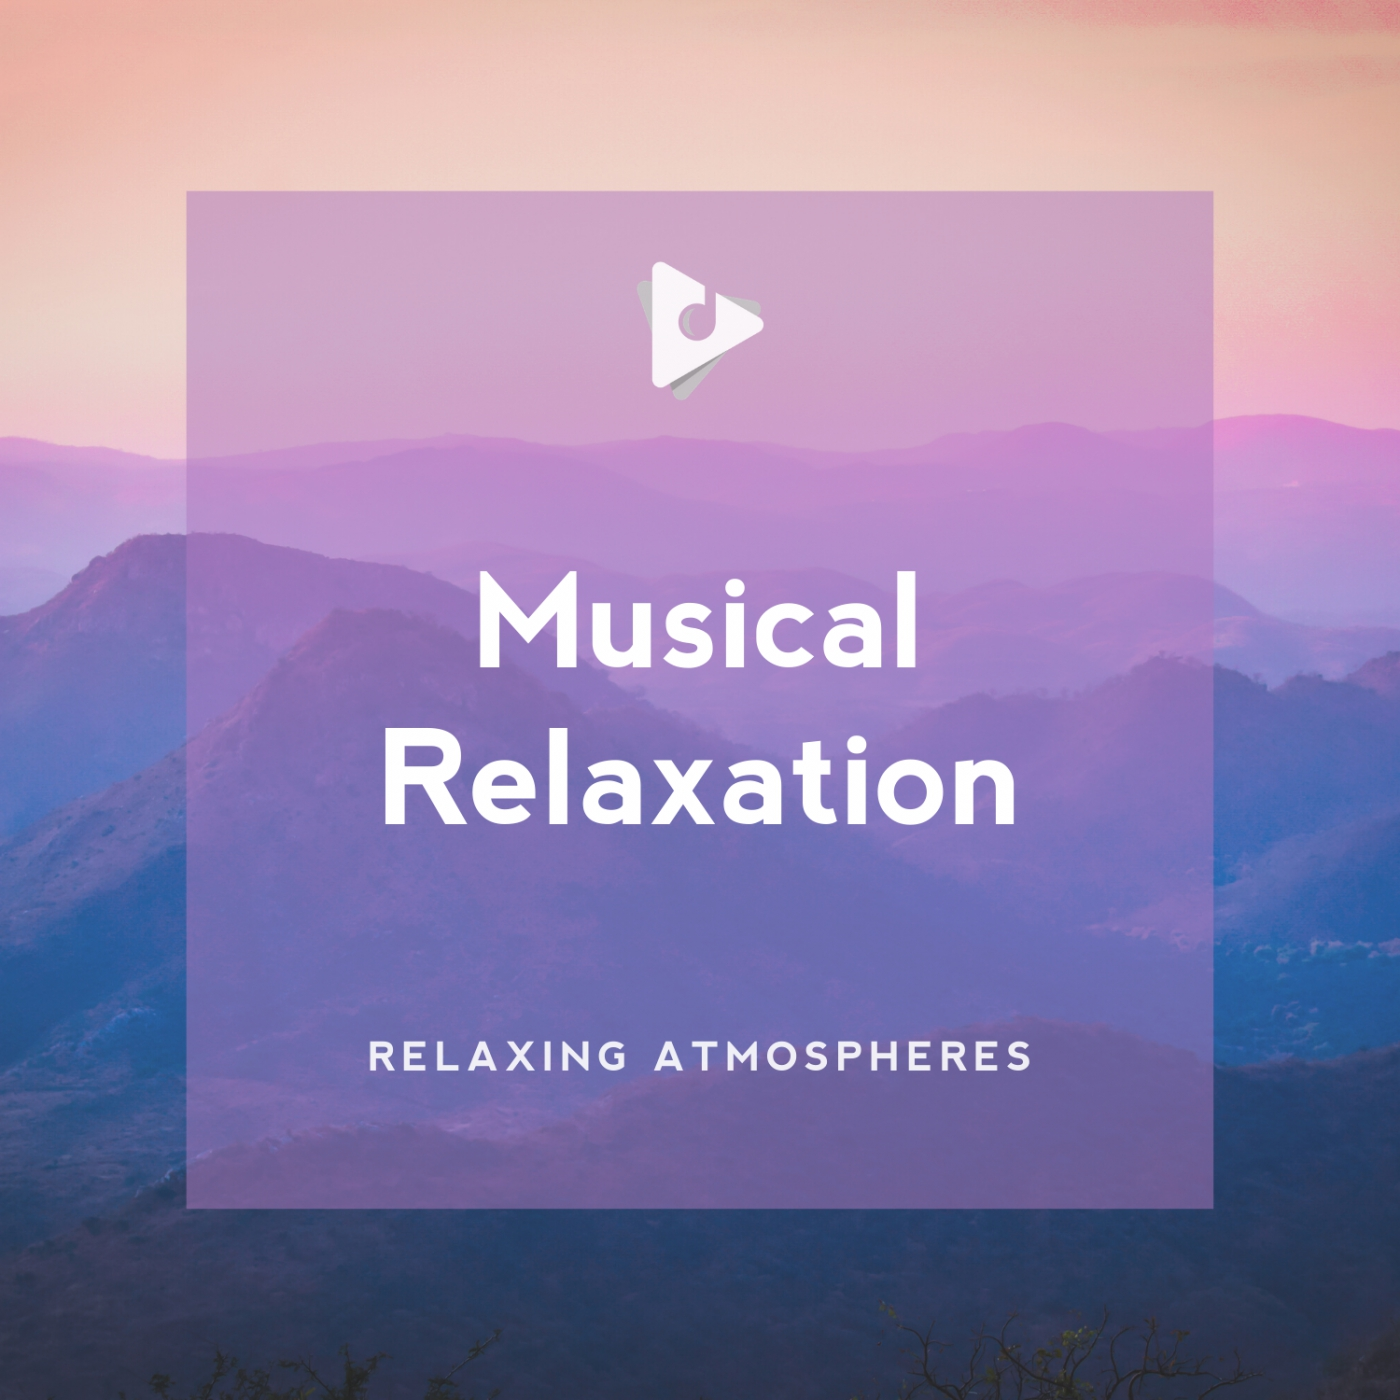 Musical Relaxation